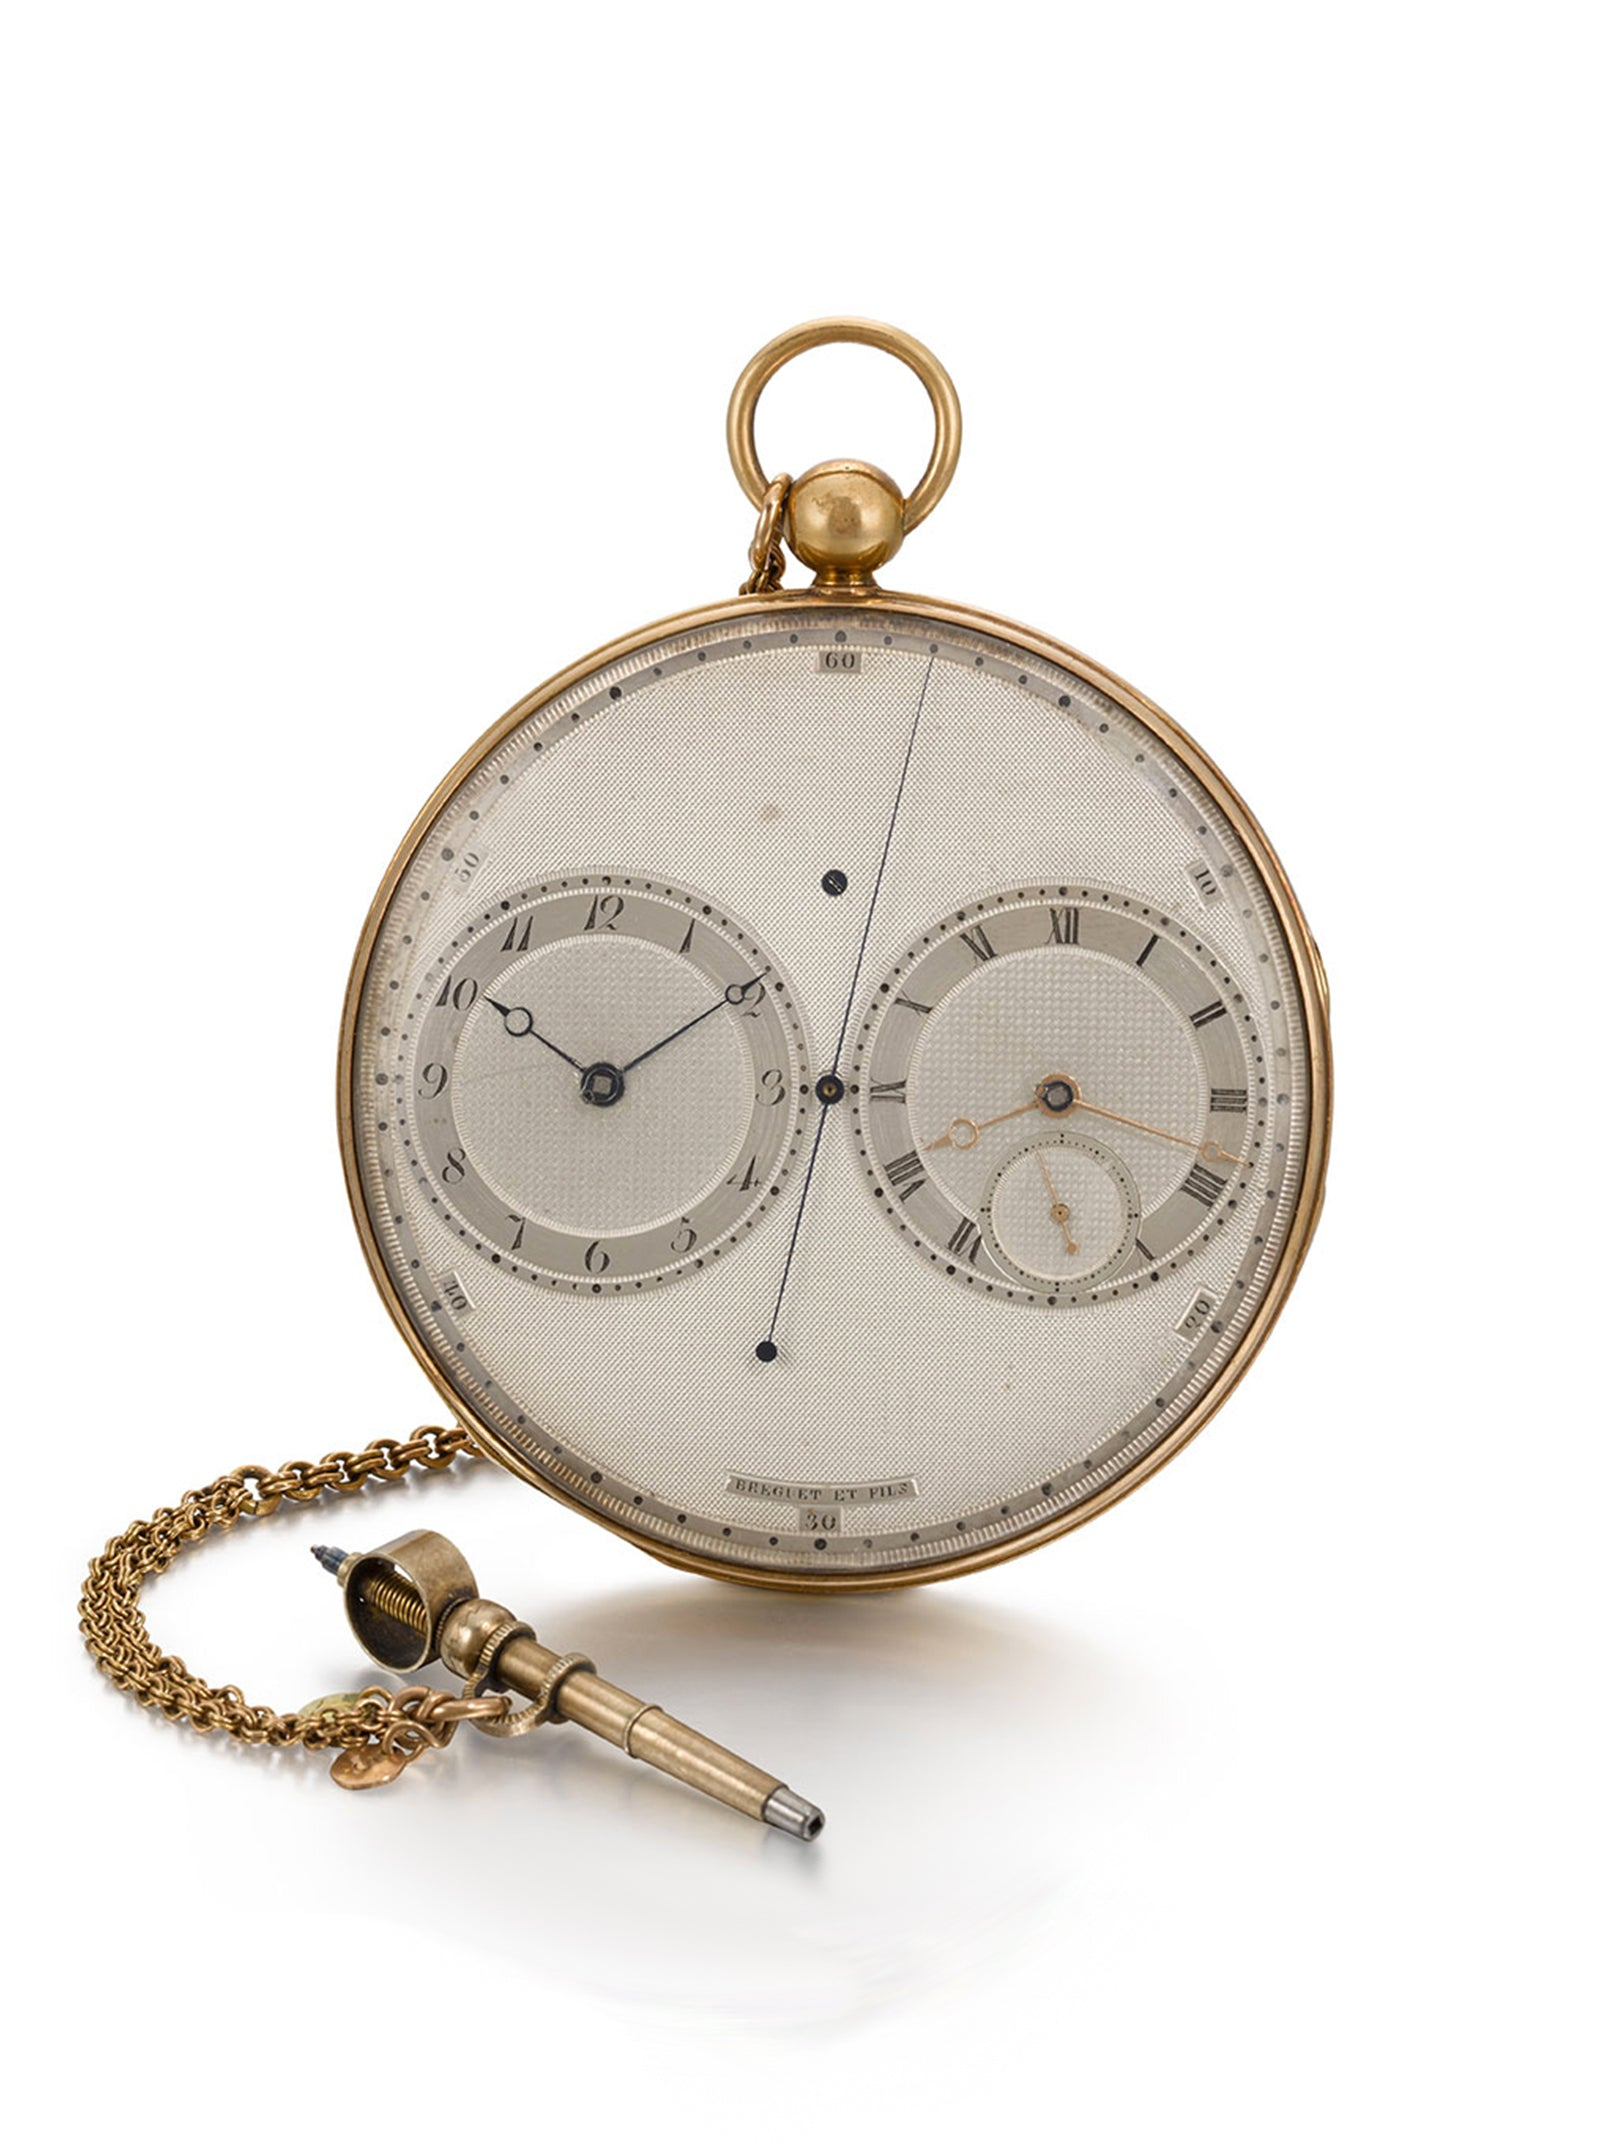 Breguet Resonance pocket watch front in Chasing Accuracy in Mechanical Wristwatches for A Collected Man London